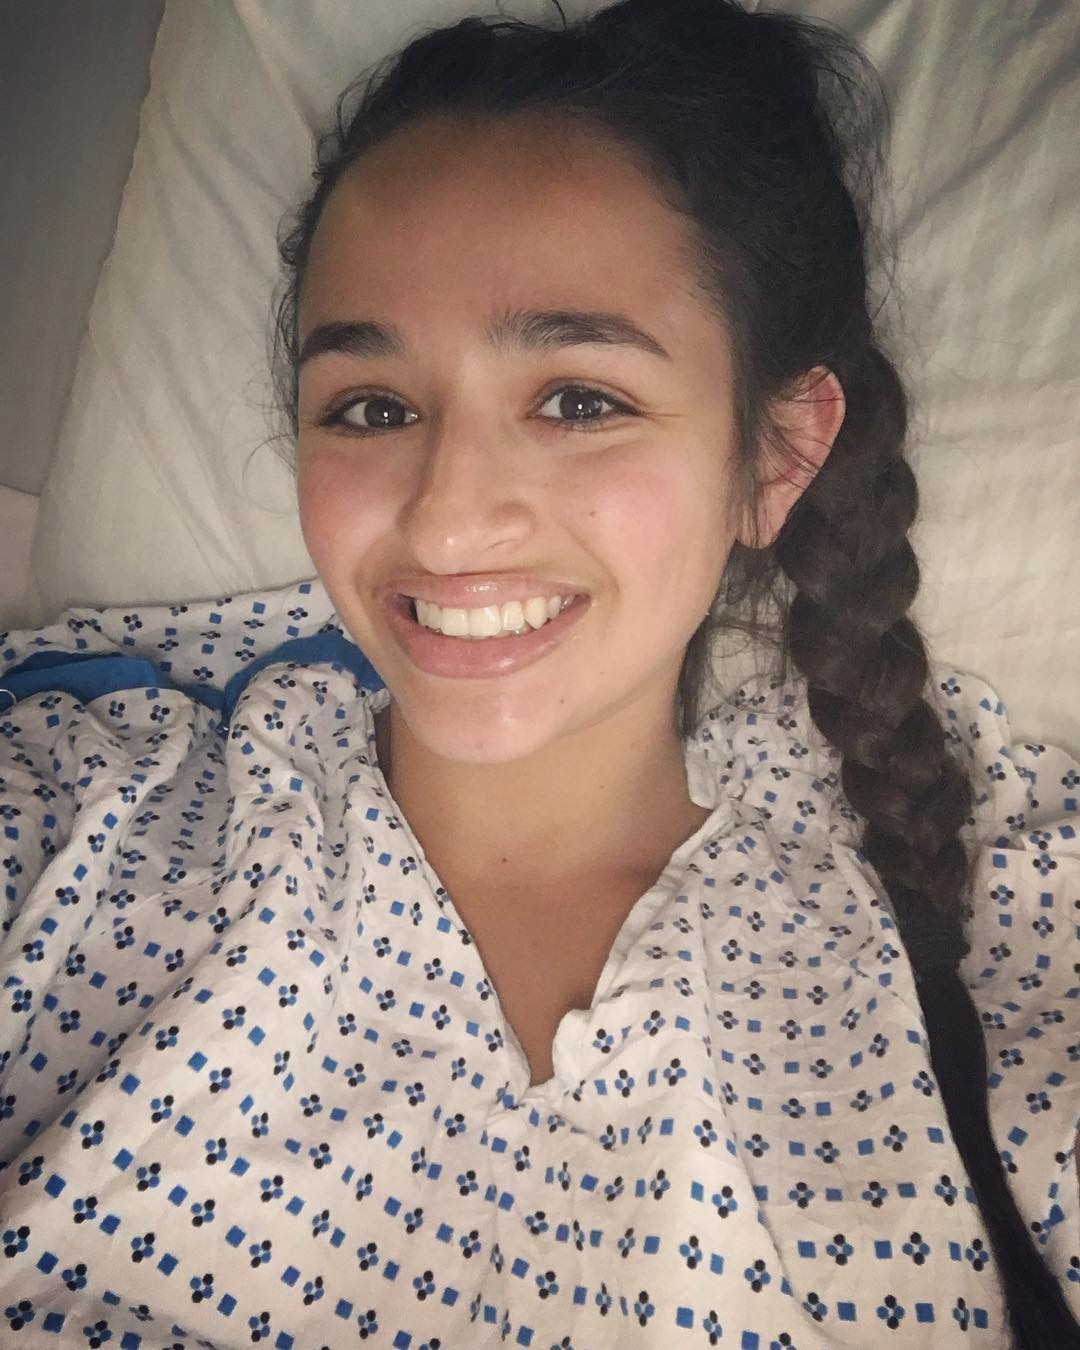 Jazz Jennings wearing a white t-shirt with blue and black color print